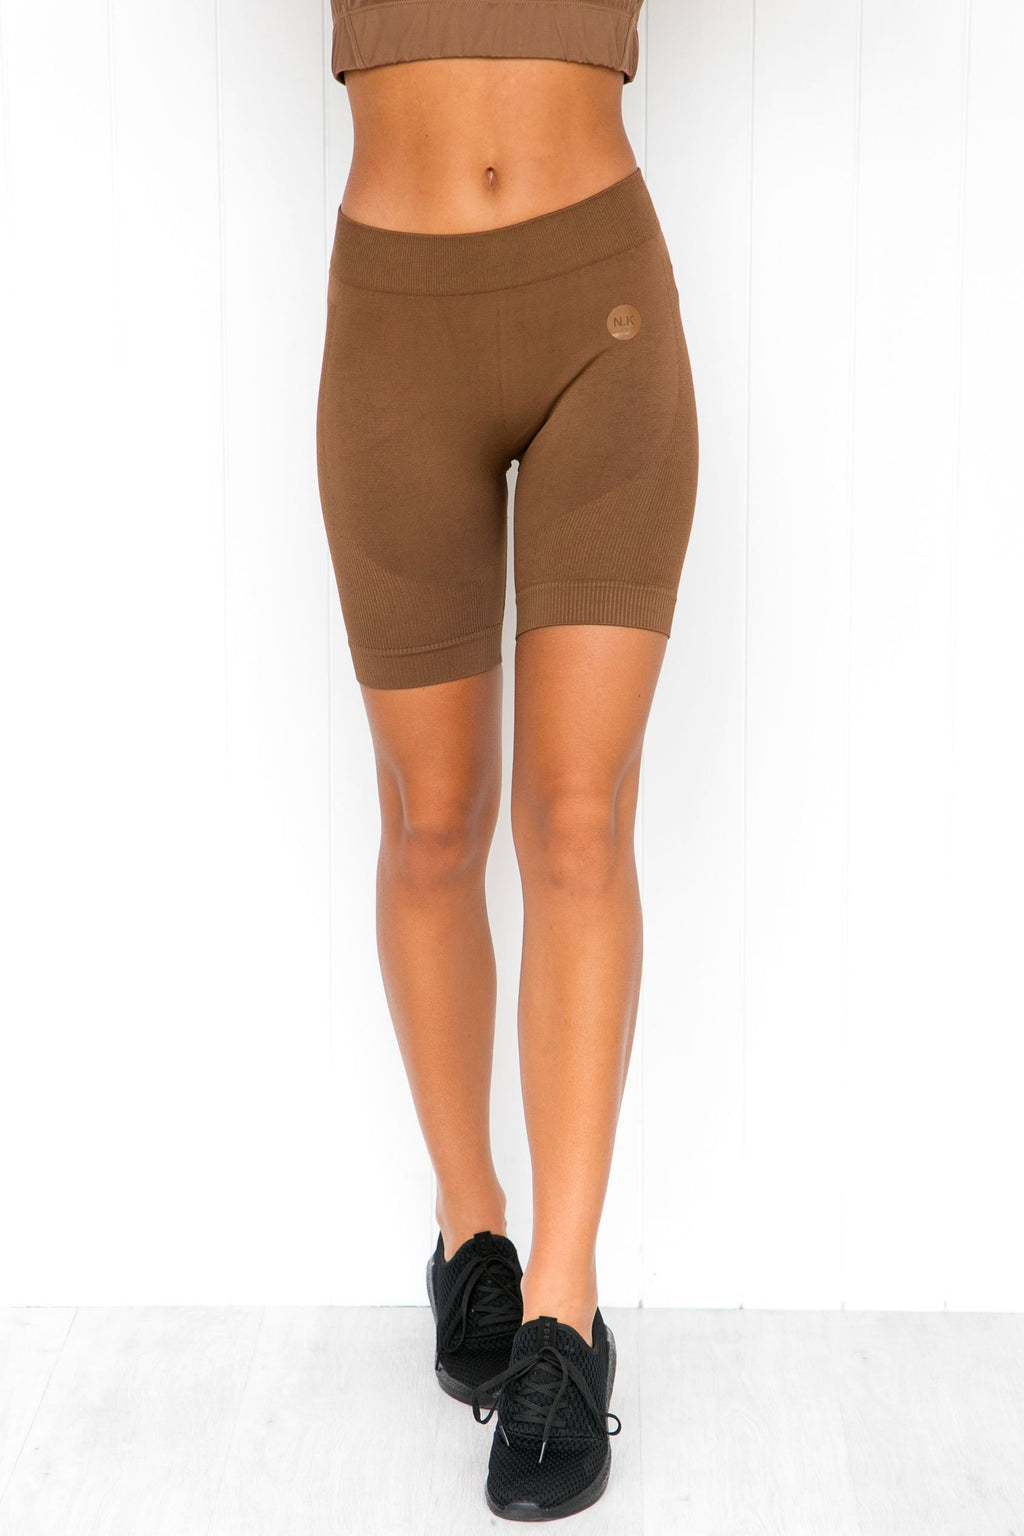 Brown Seamless Bike Shorts - PURE DASH